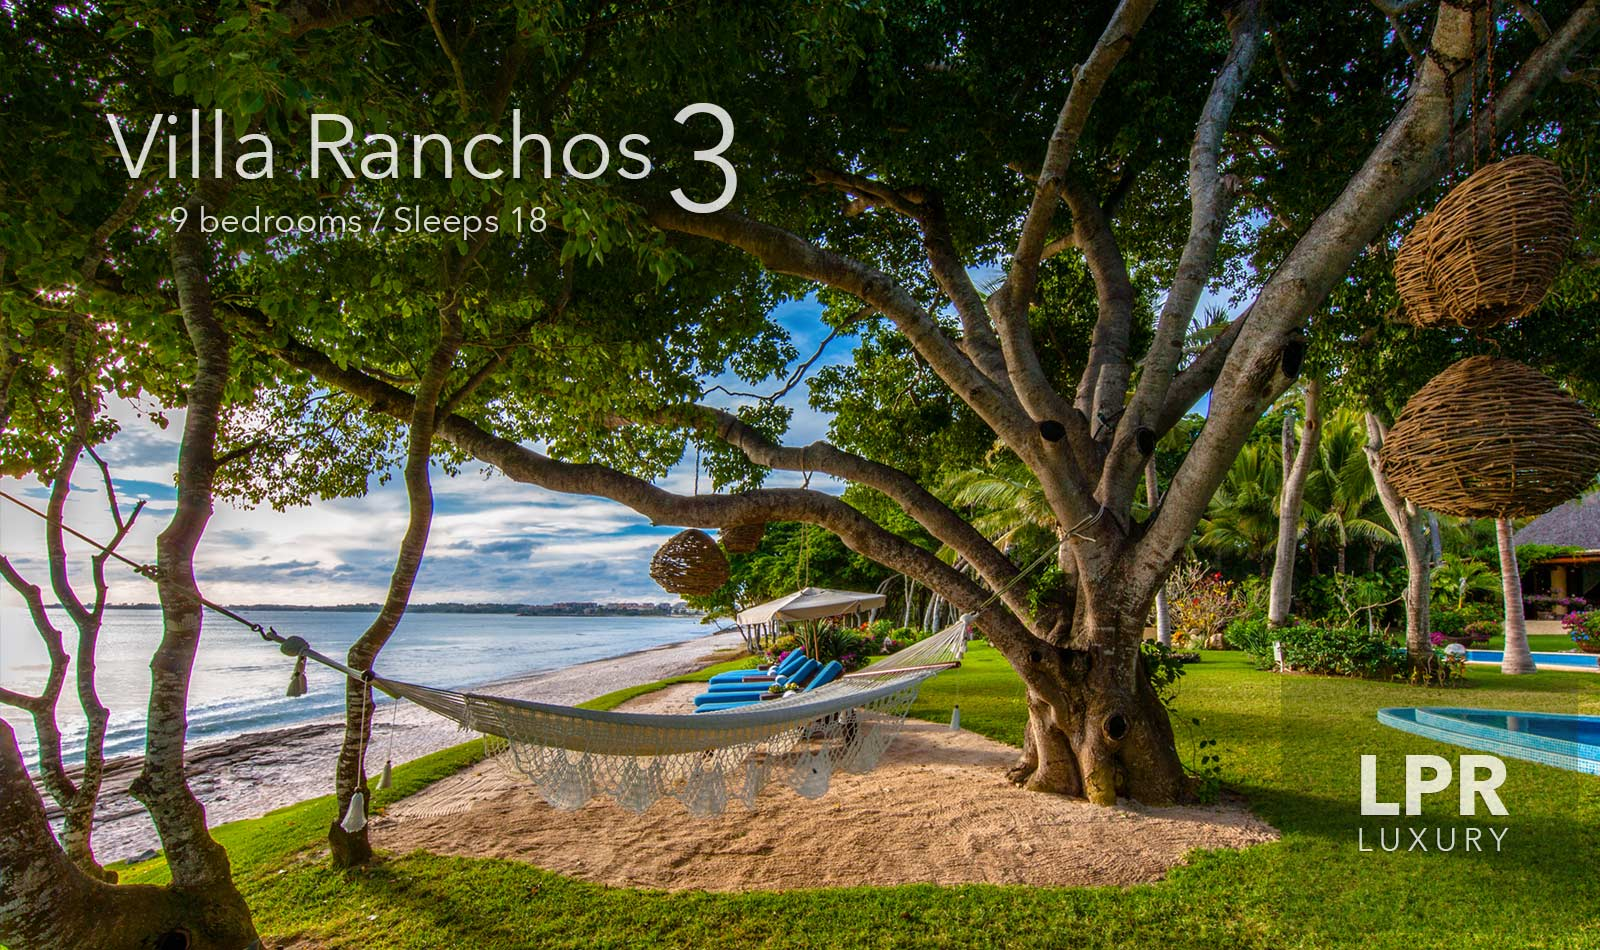 Villa Ranchos 3 - Ultra luxury, ultra private, ultra cool Punta Mita, Mexico. Beachfront vacation rental on Ranchos beach at the exclusive Punta Mita Resort, Riviera Nayarit, Mexico.